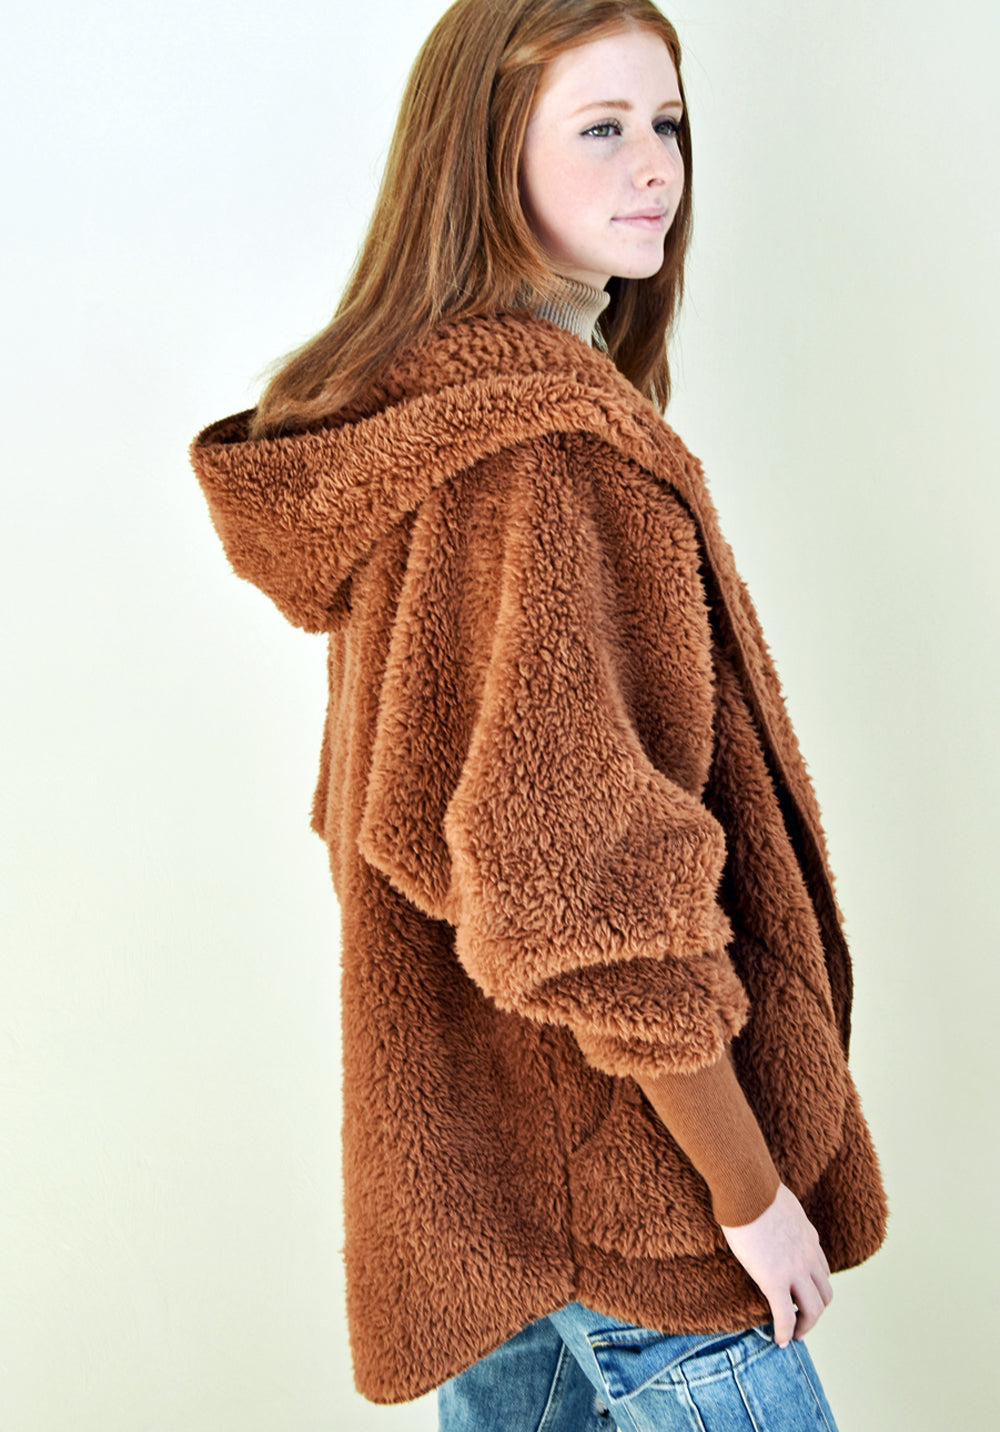 Fluffy Sweater Body Wrap - Fall Harvest